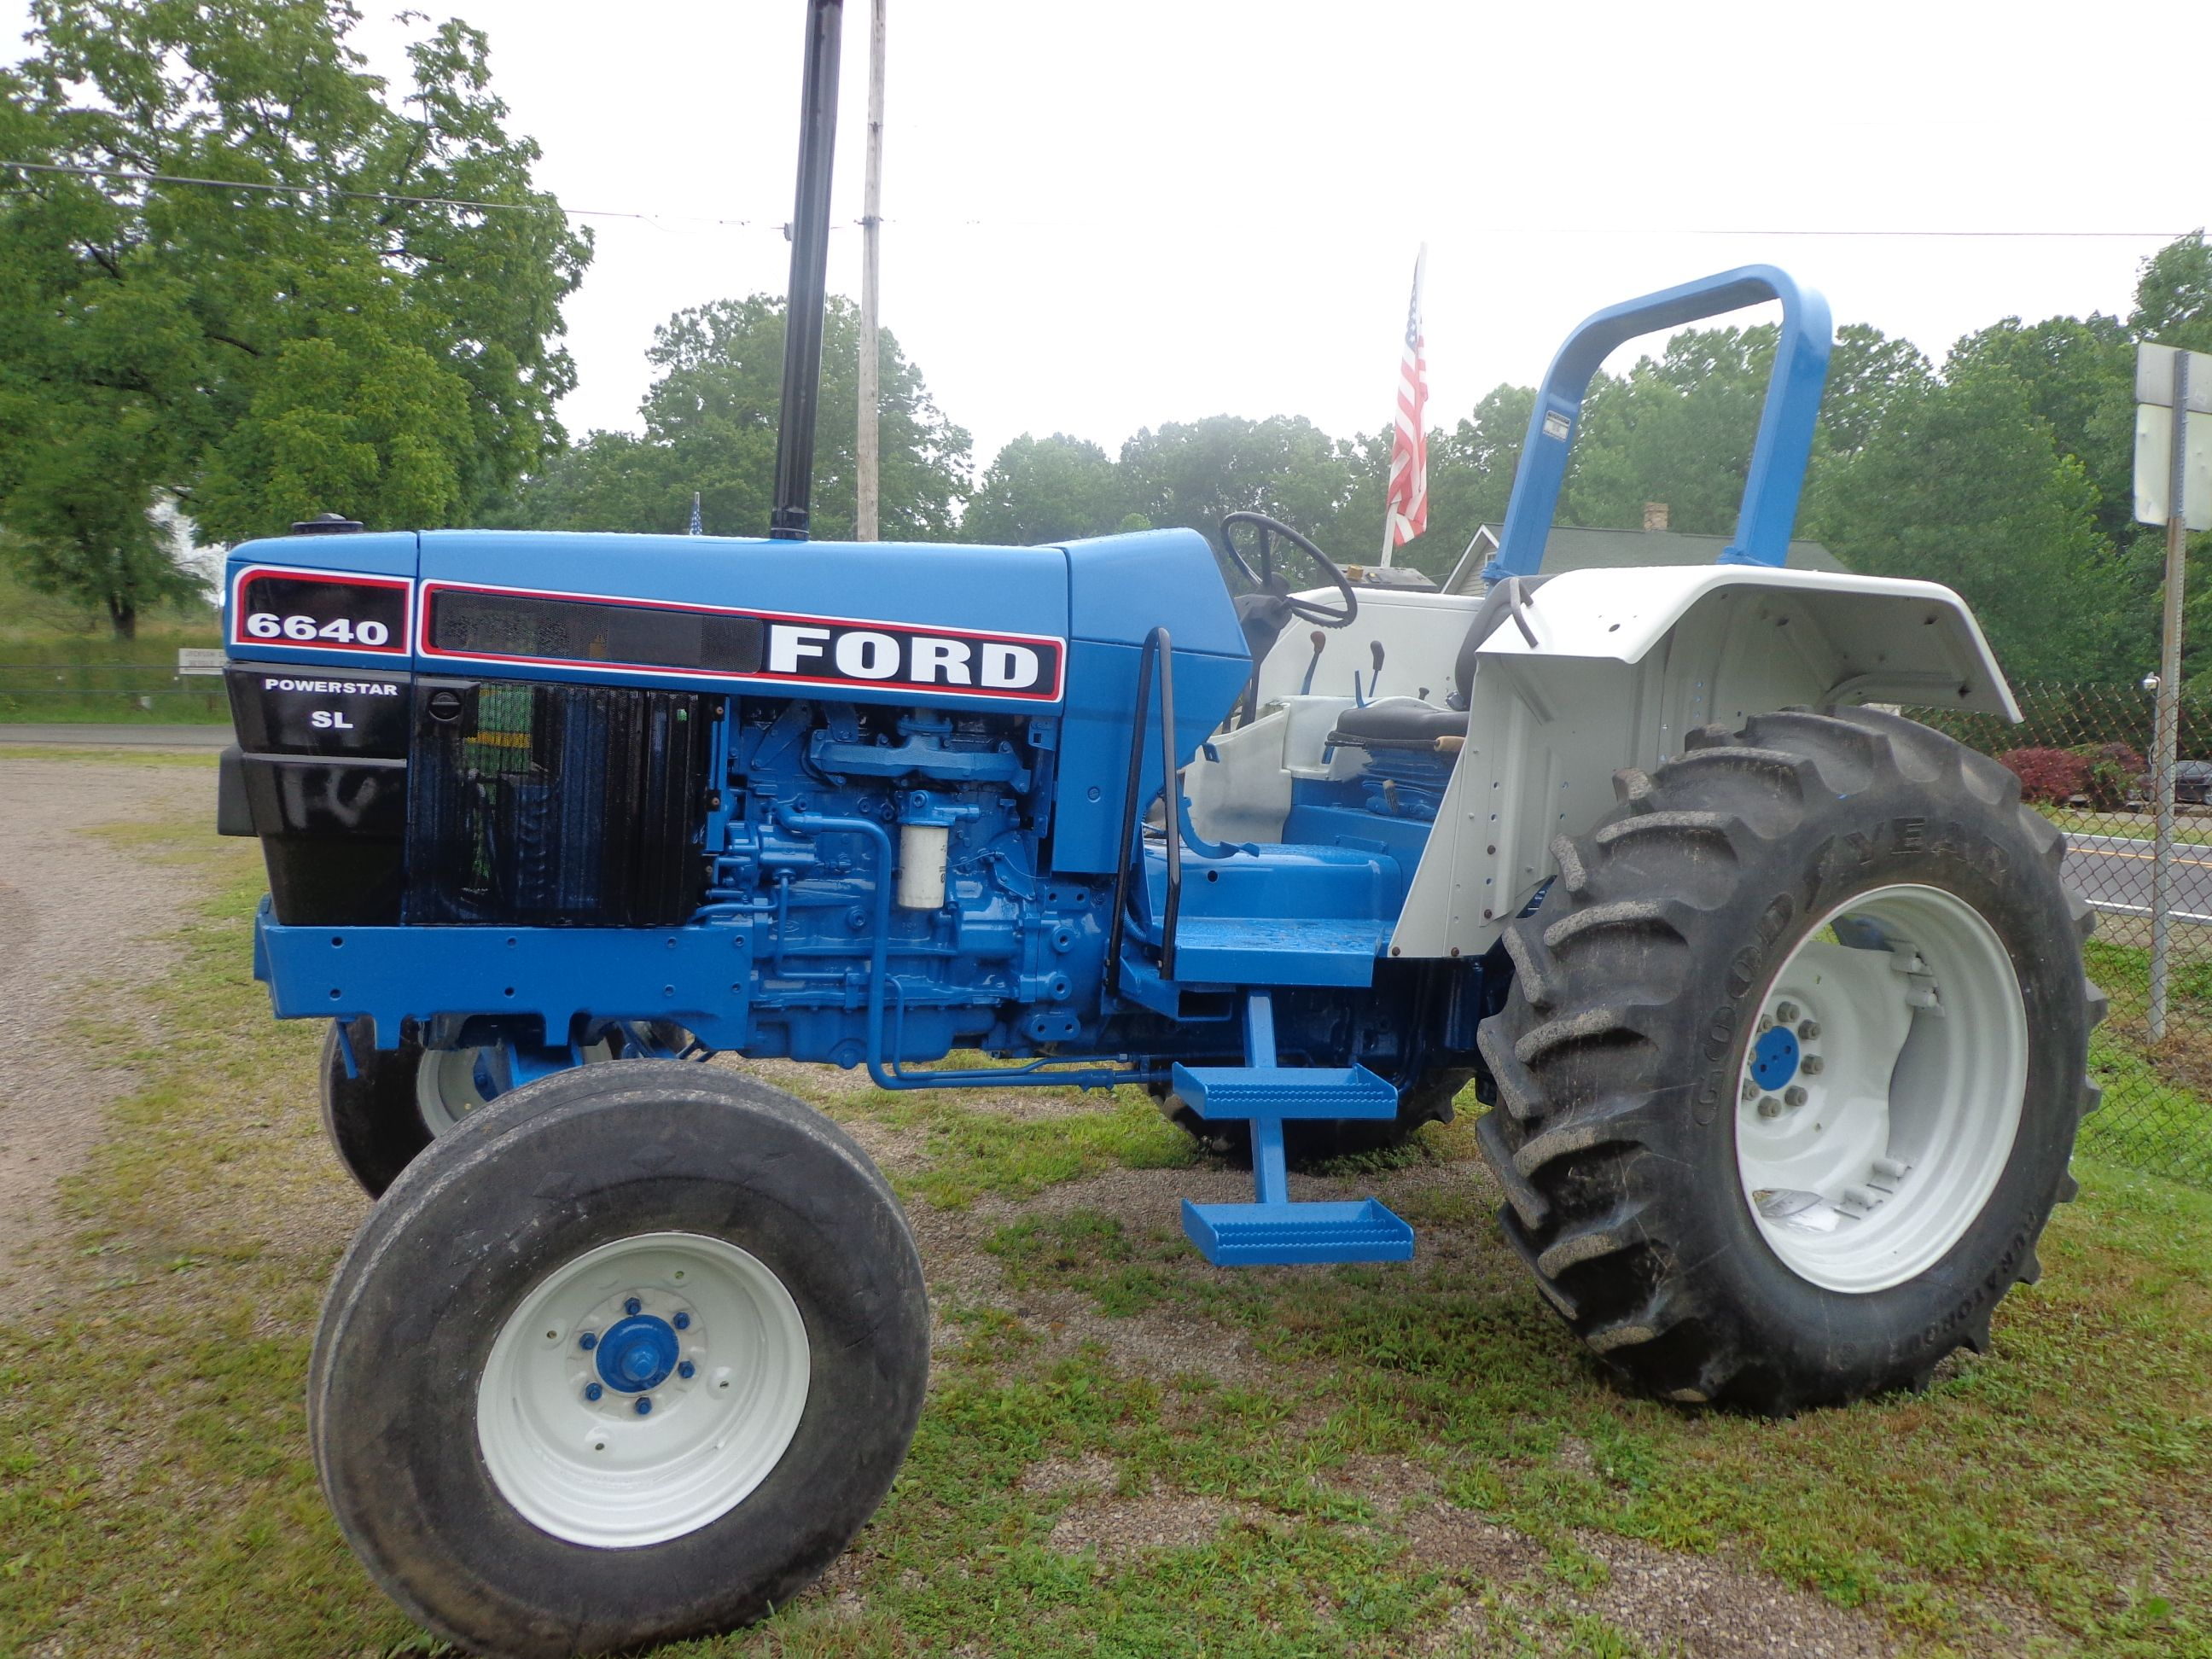 Ford 6640 Tractor Google Search Ford Tractors New Holland